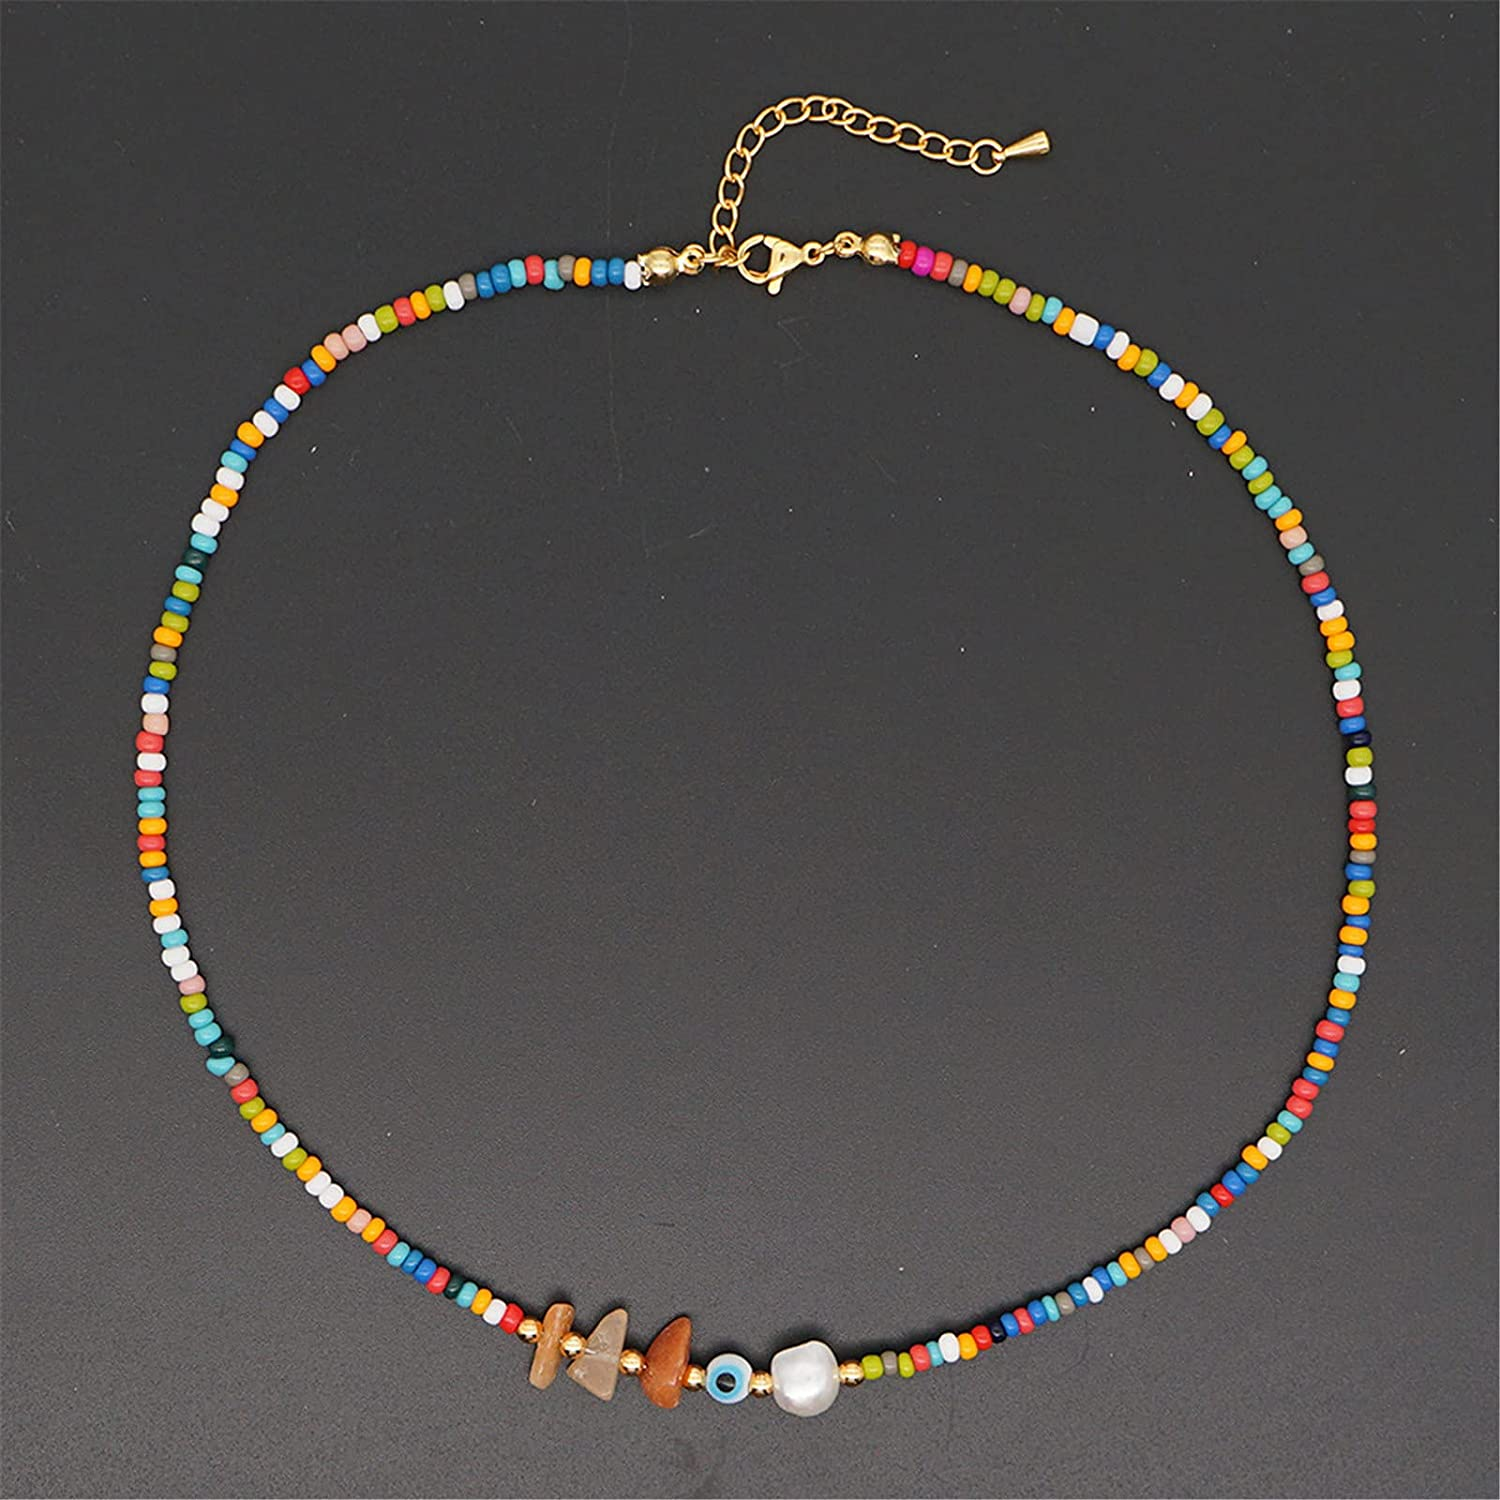 Bohemian Colorful Natural Stone Beaded Faux Pearl Choker Necklace Handmade Adjustable Rainbow Seed Collar Necklace for Women Girl Teen Boho Y2K Jewelry